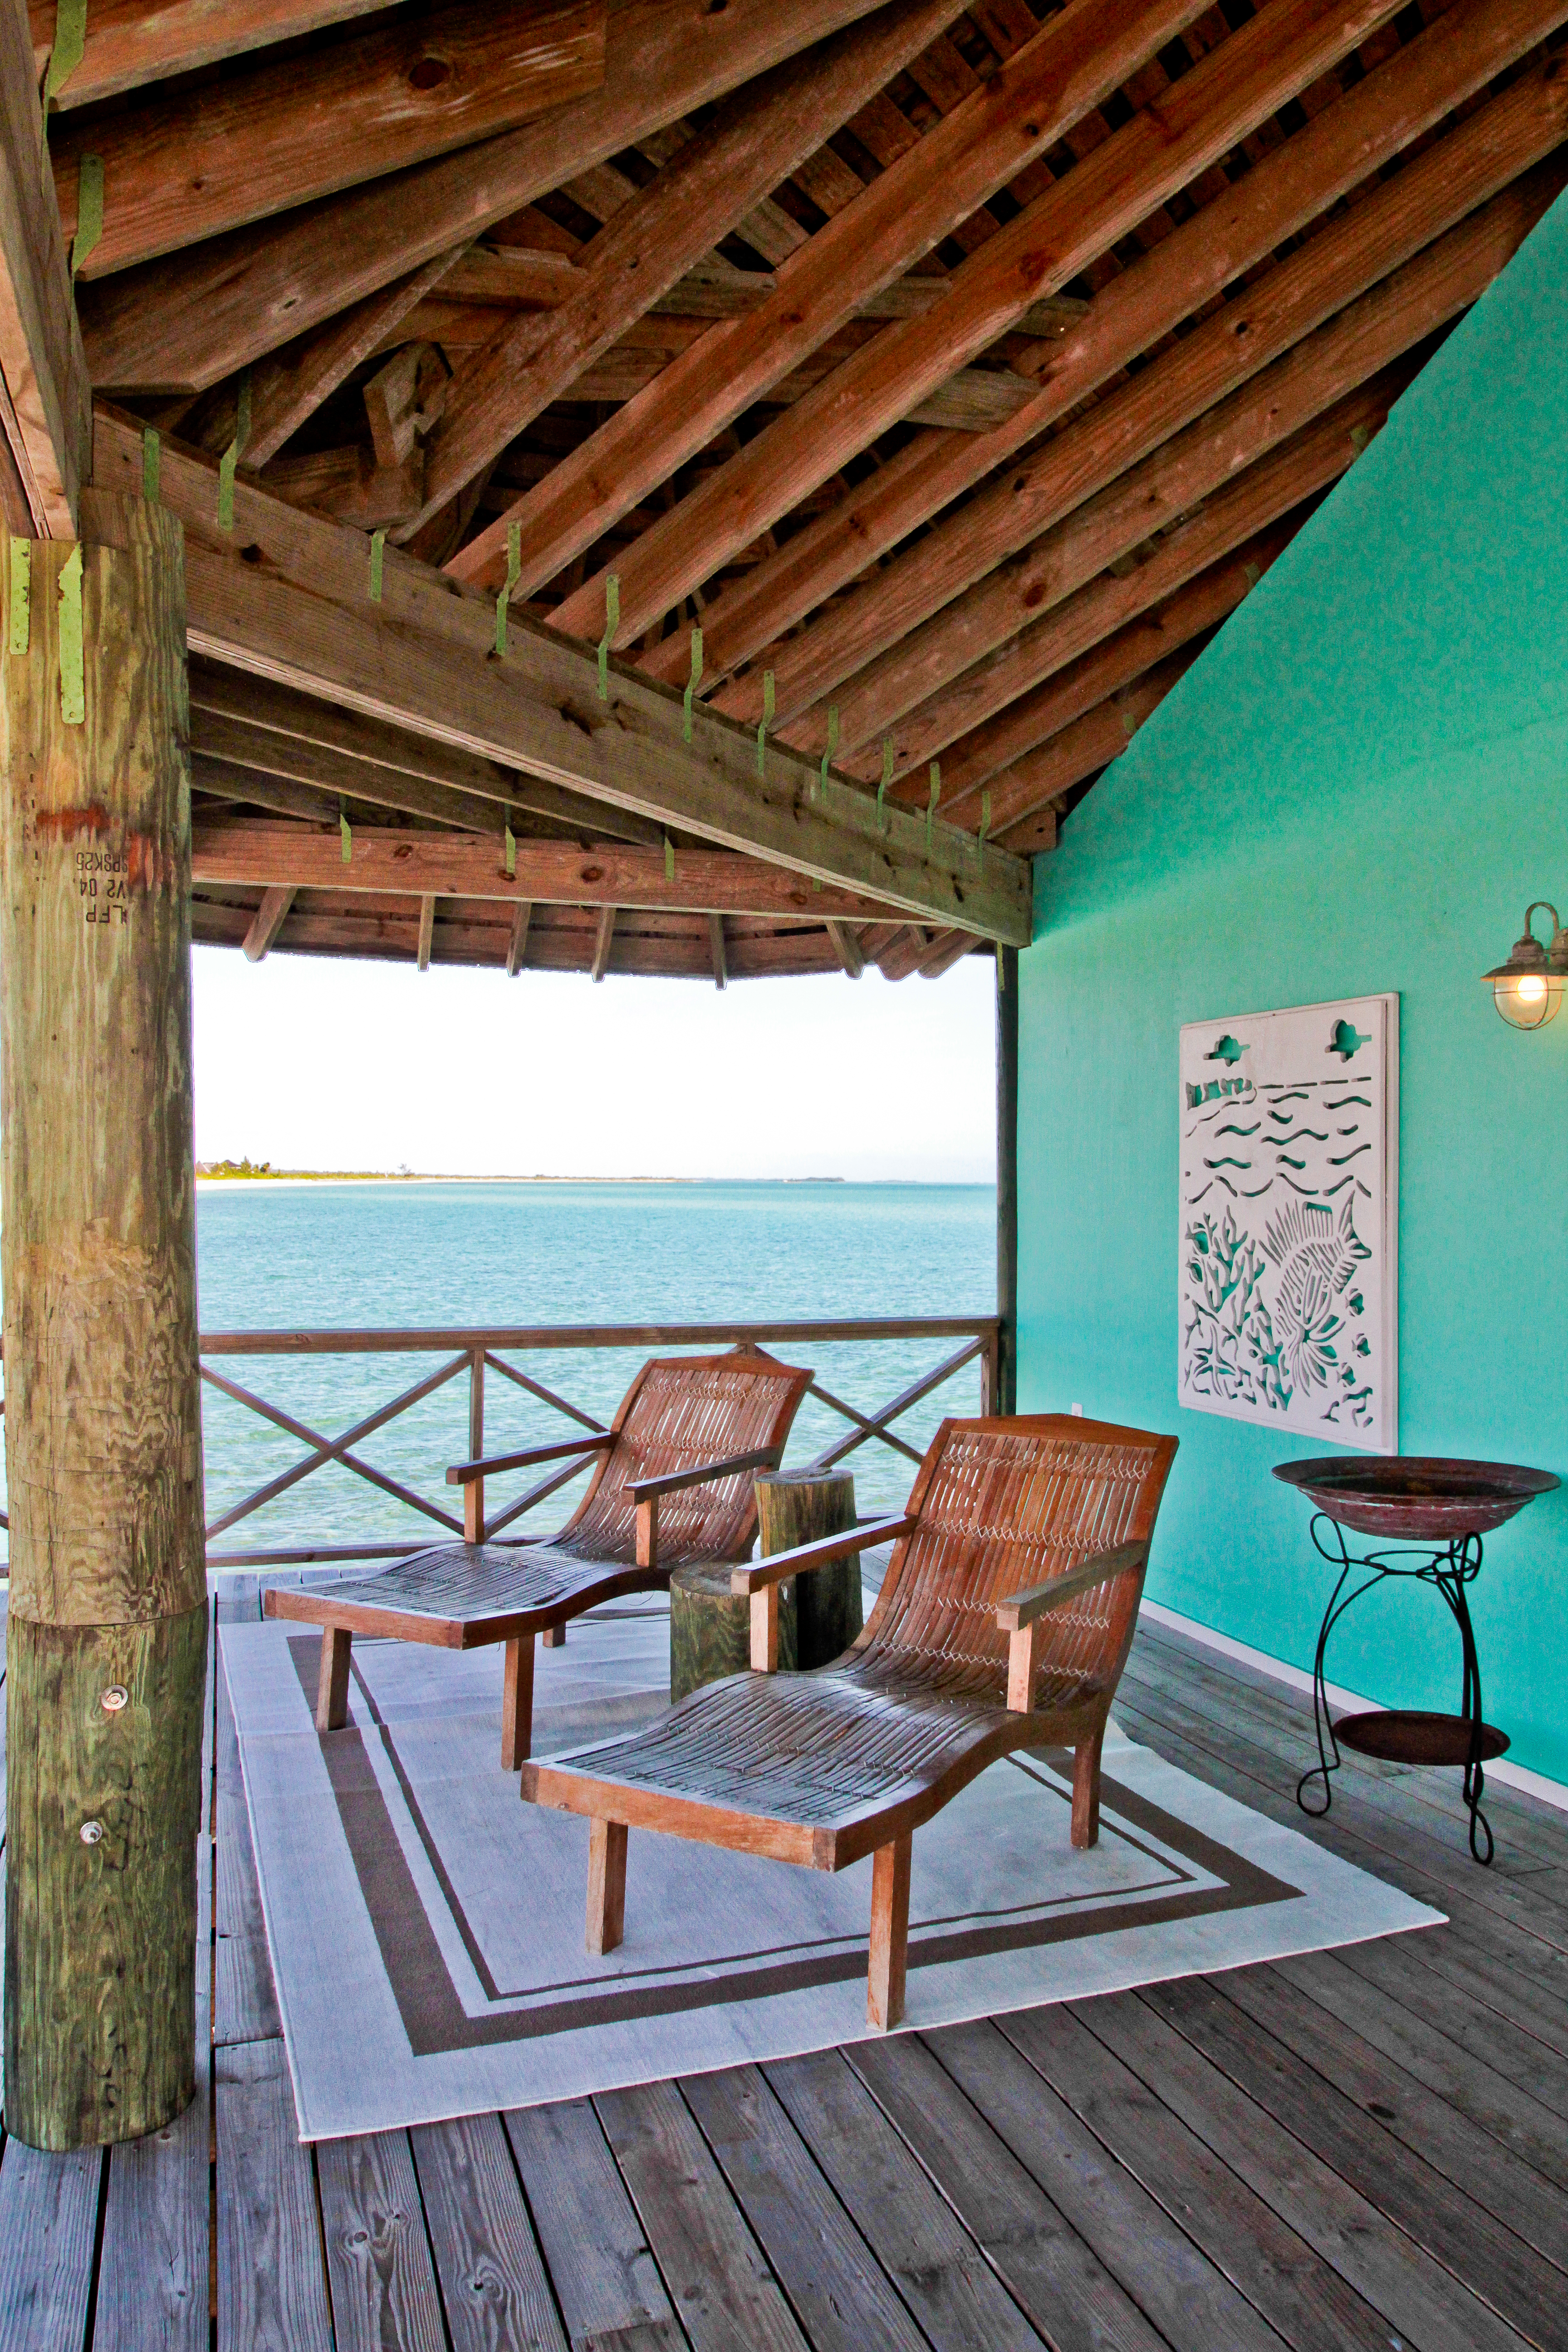 Expect a laid-back beach vacation, minus the crowds of nearby Nassau.